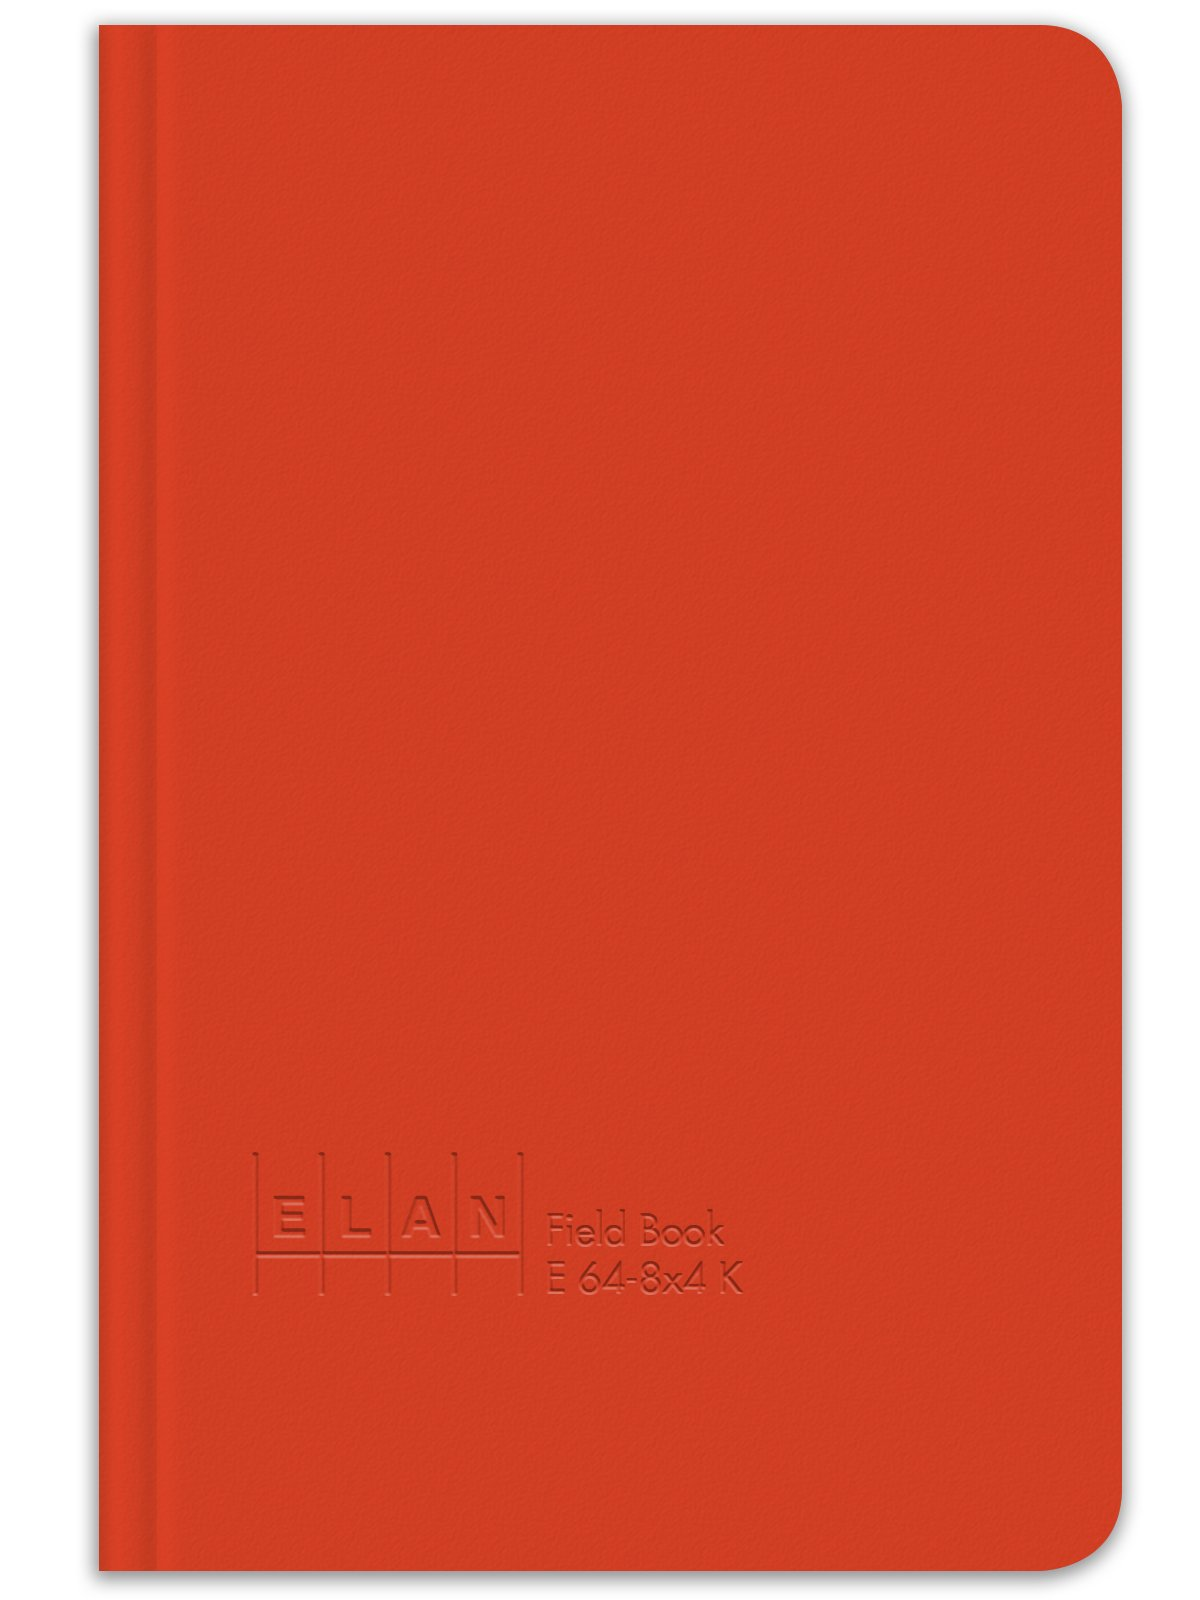 Elan Publishing Company E64-8x4K King Size Field Surveying Book 6 x 9, Bright Orange Cover (Pack of 24) by Elan Publishing Company (Image #1)